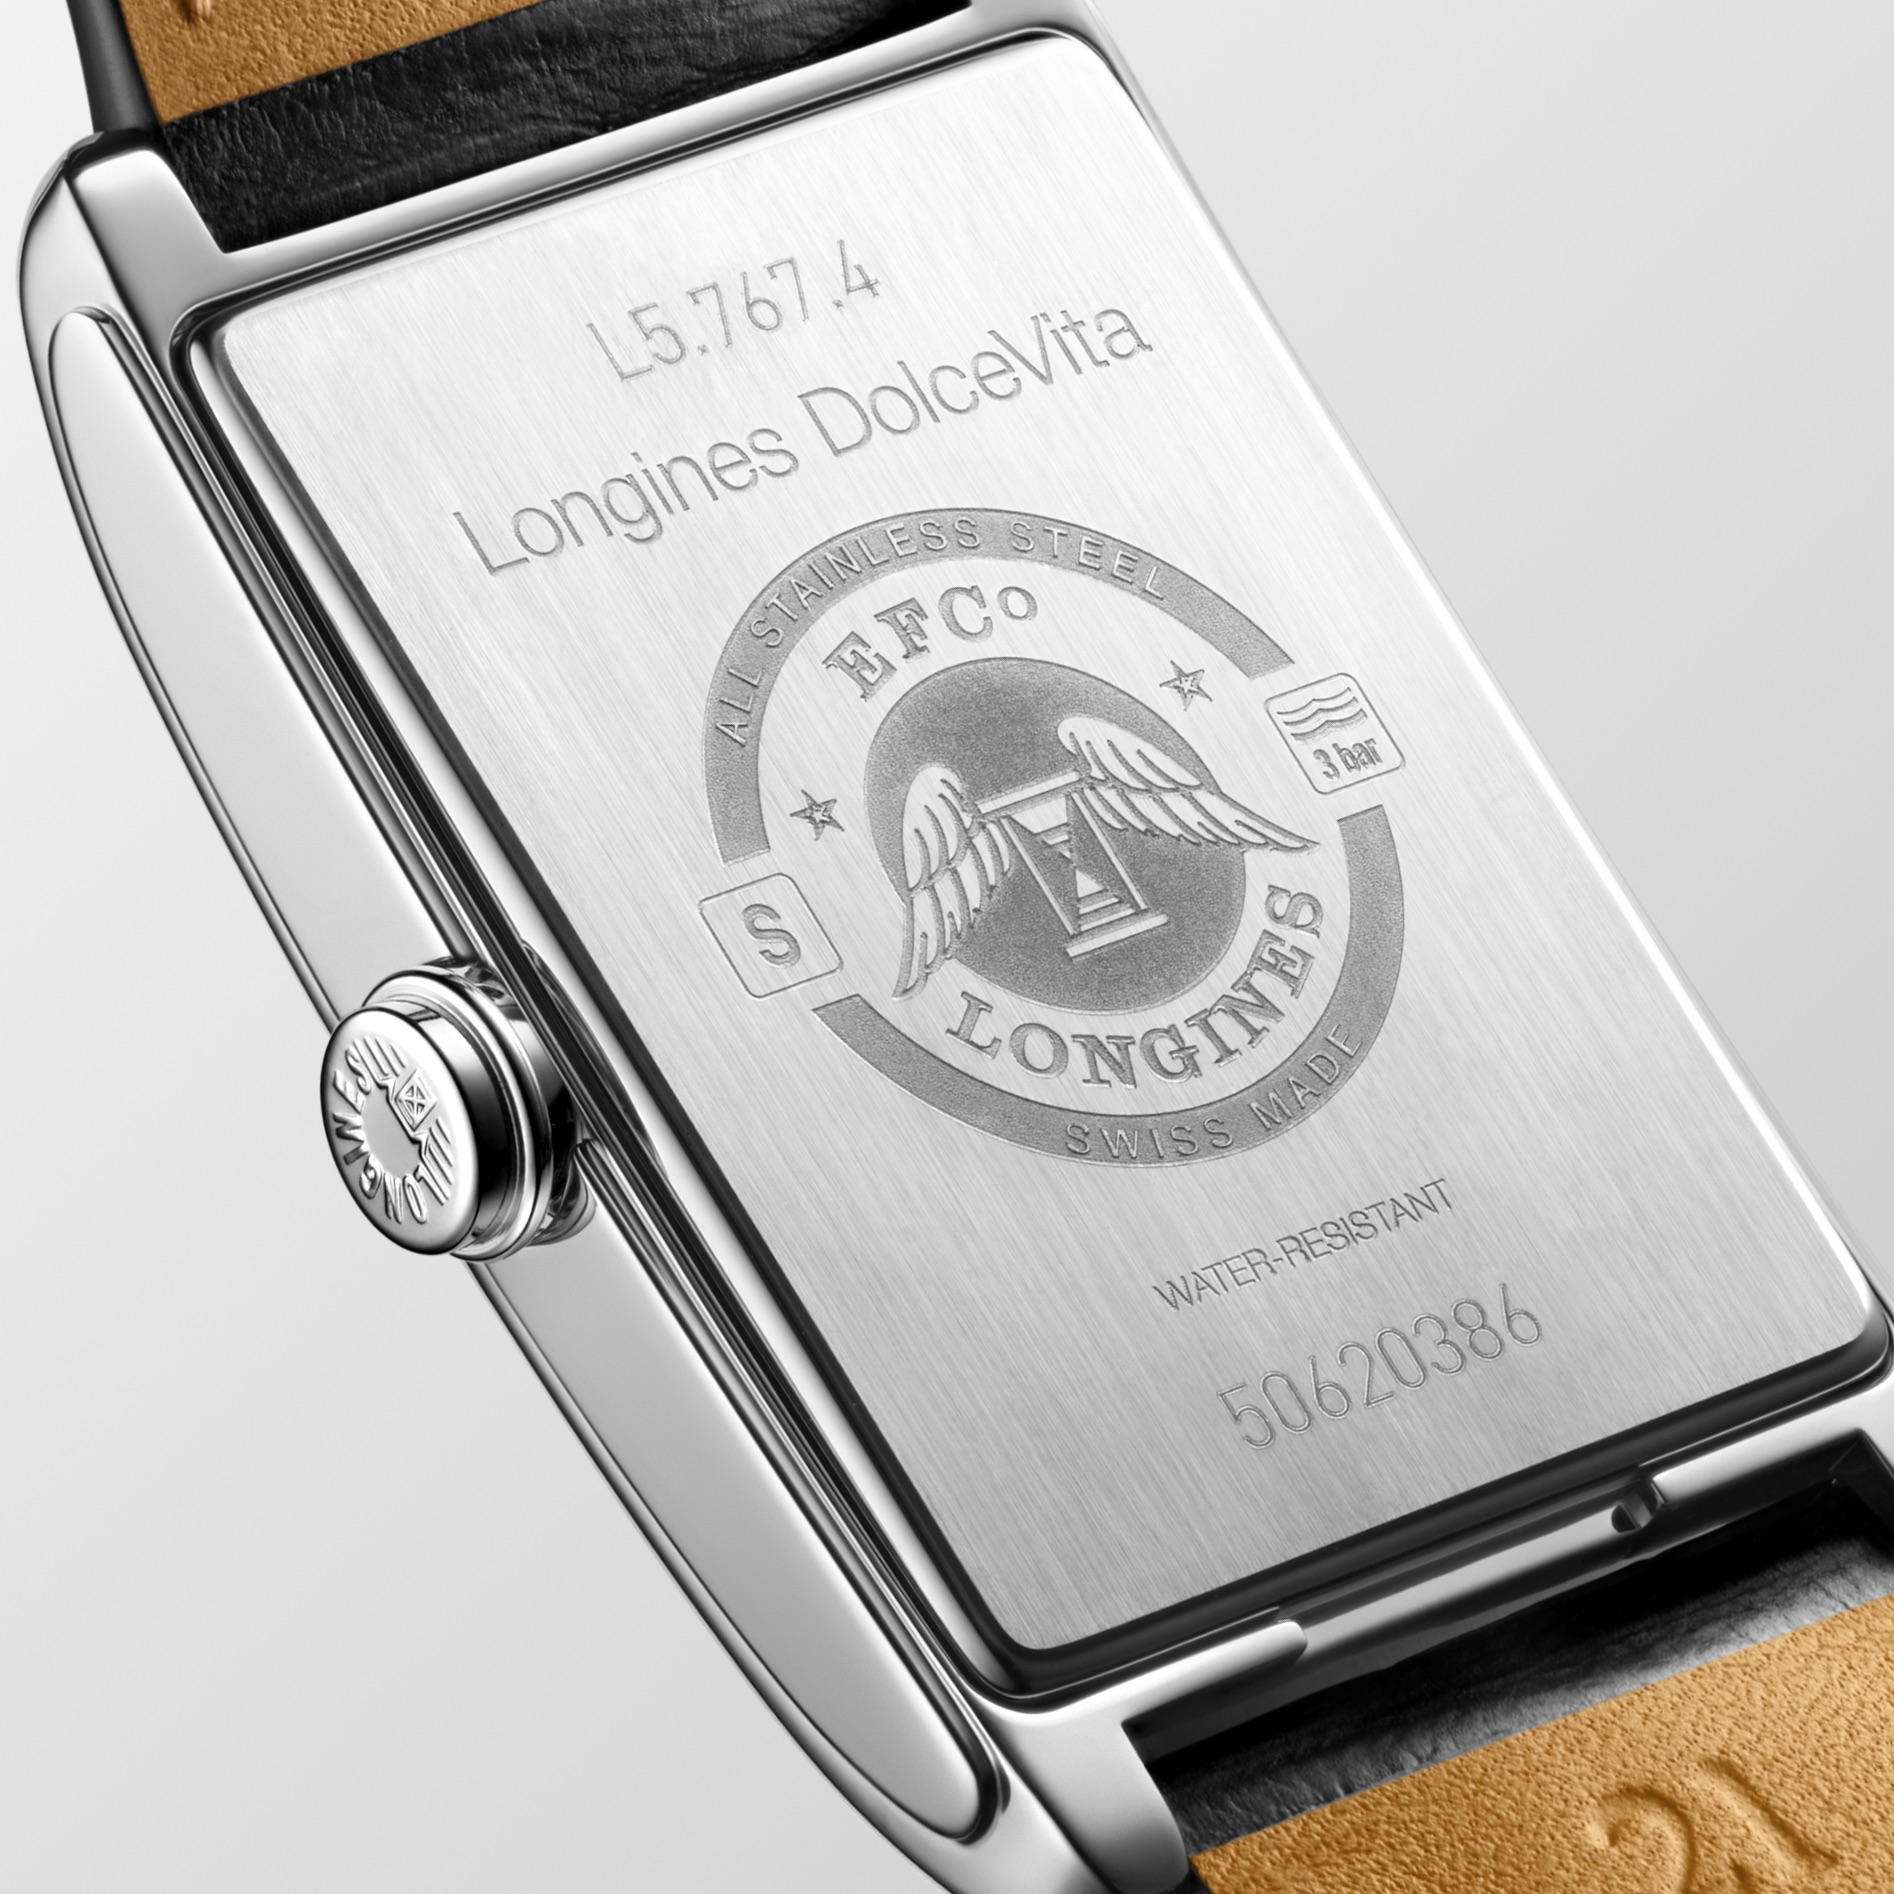 The Longines DolceVita adds sector dials to its range